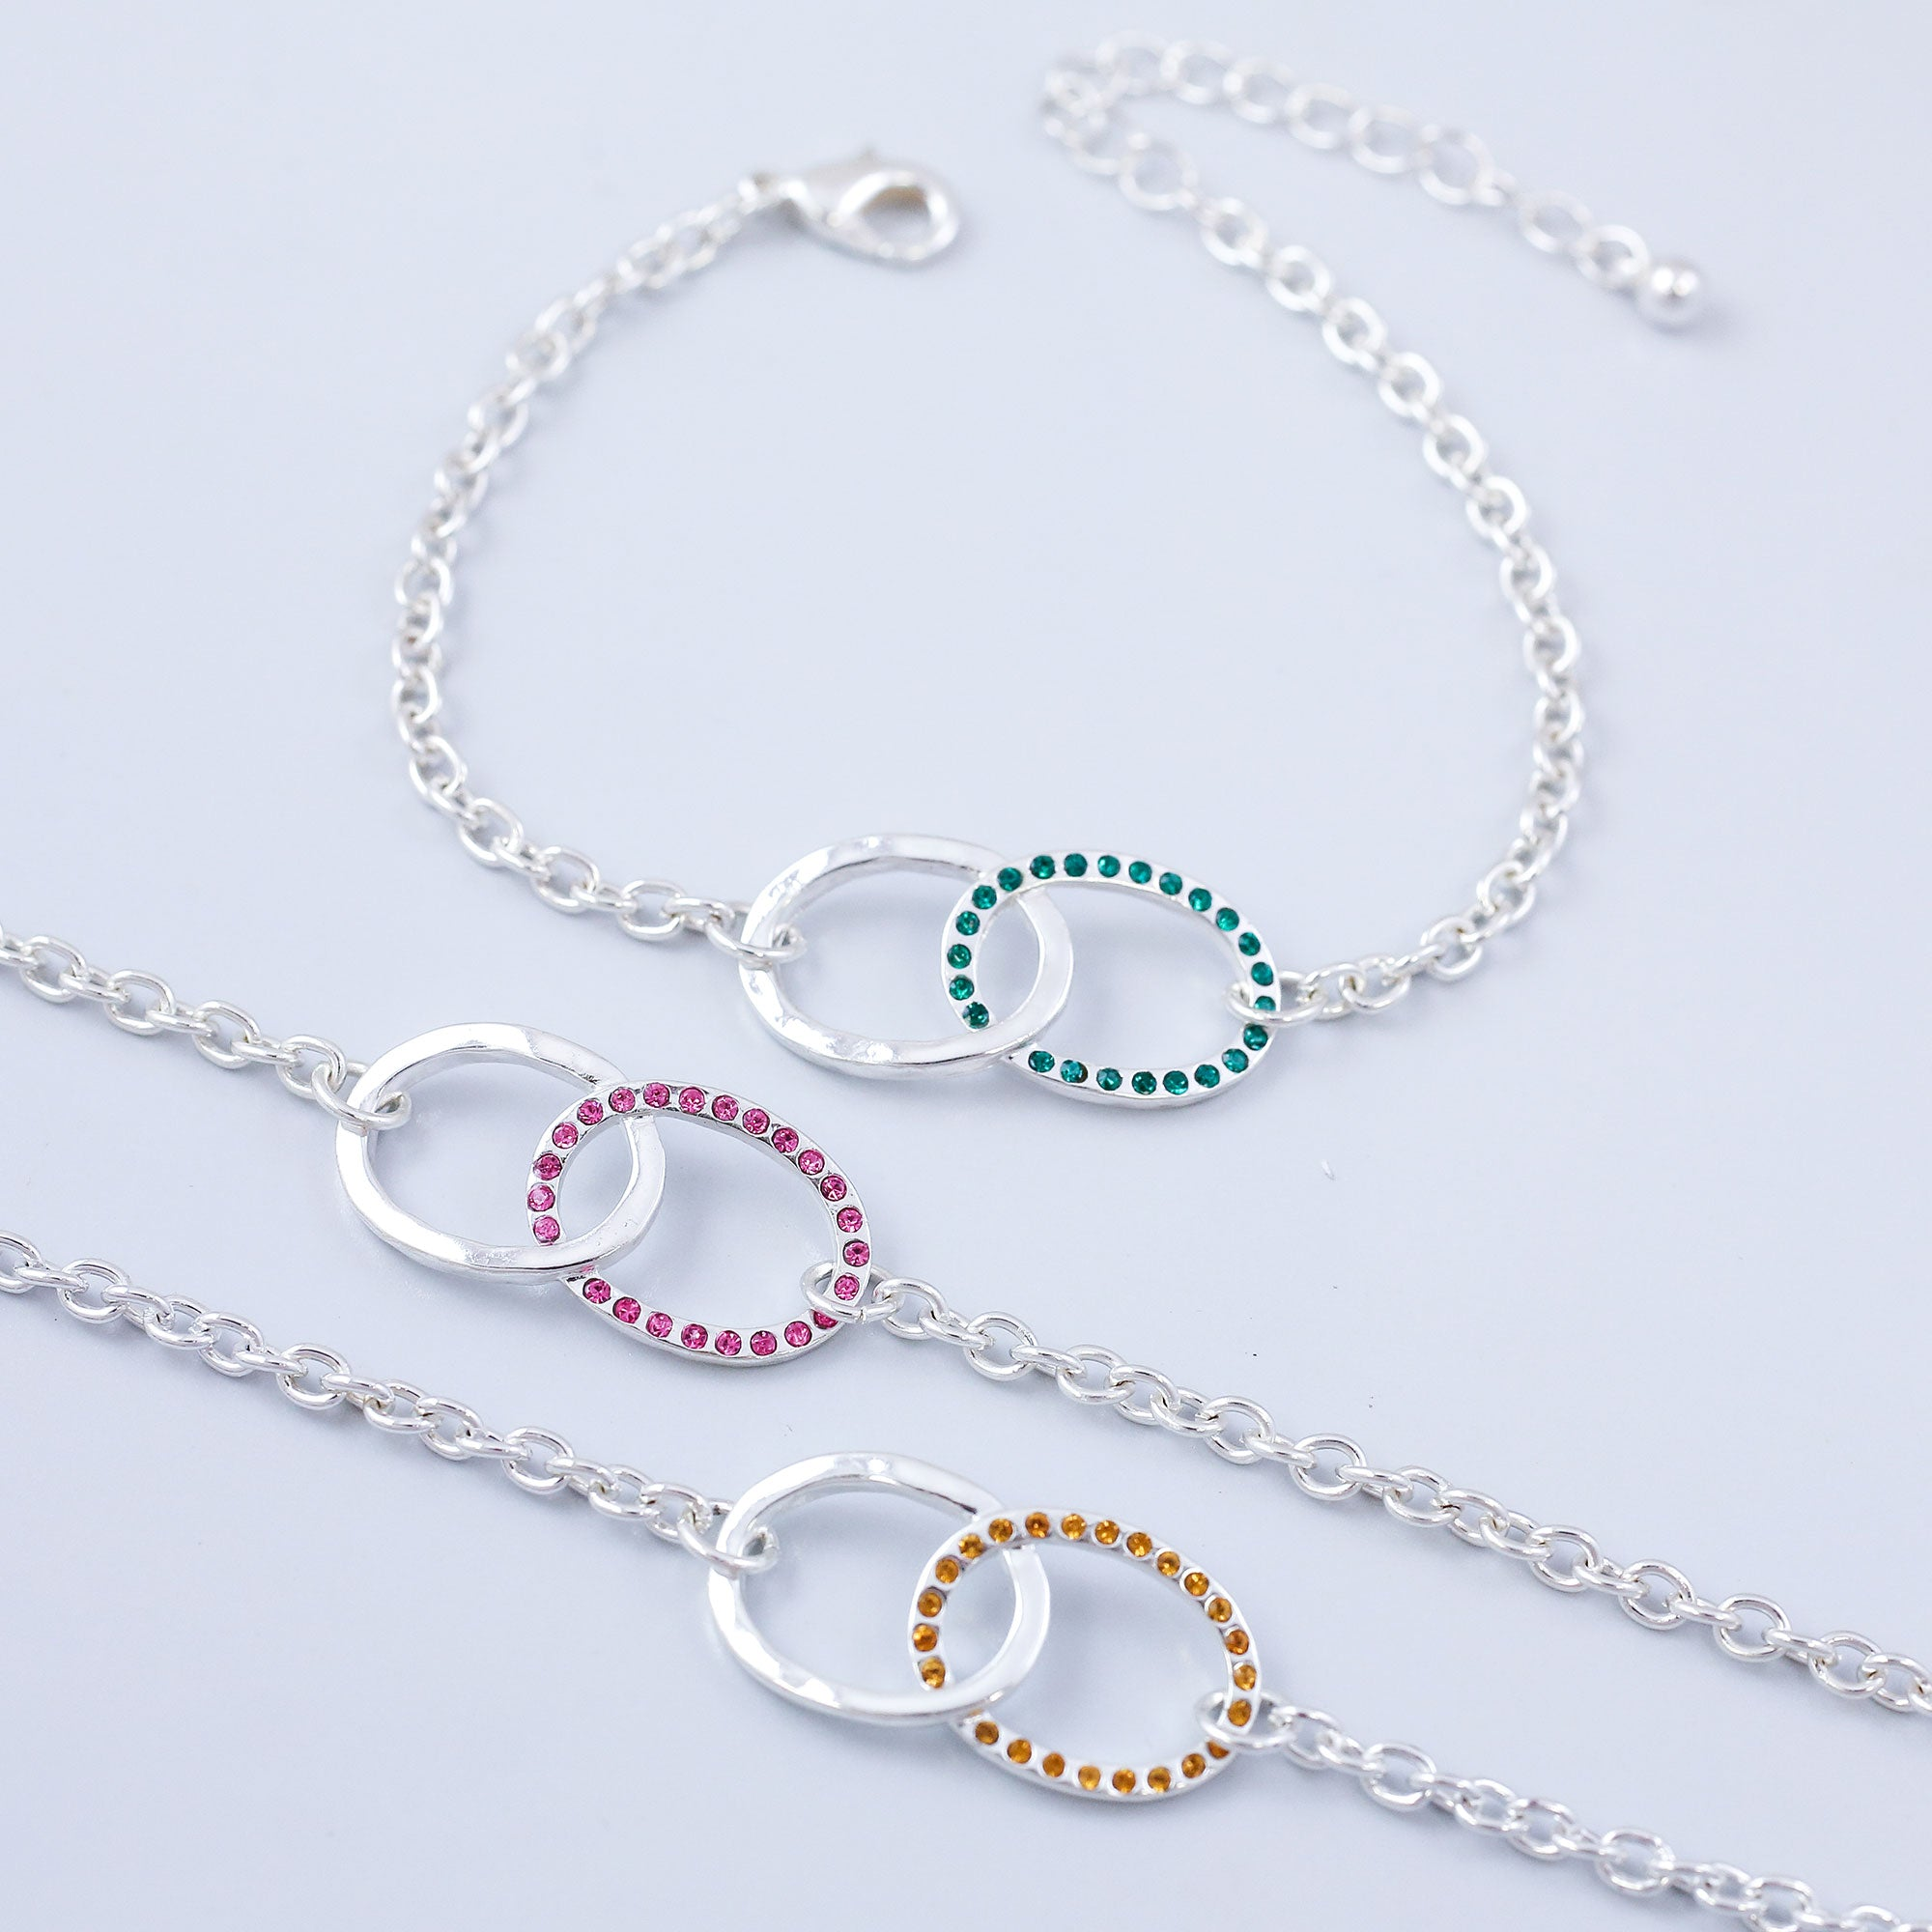 Birthstone Infinity Bracelet Made with Crystals from Swarovski ®